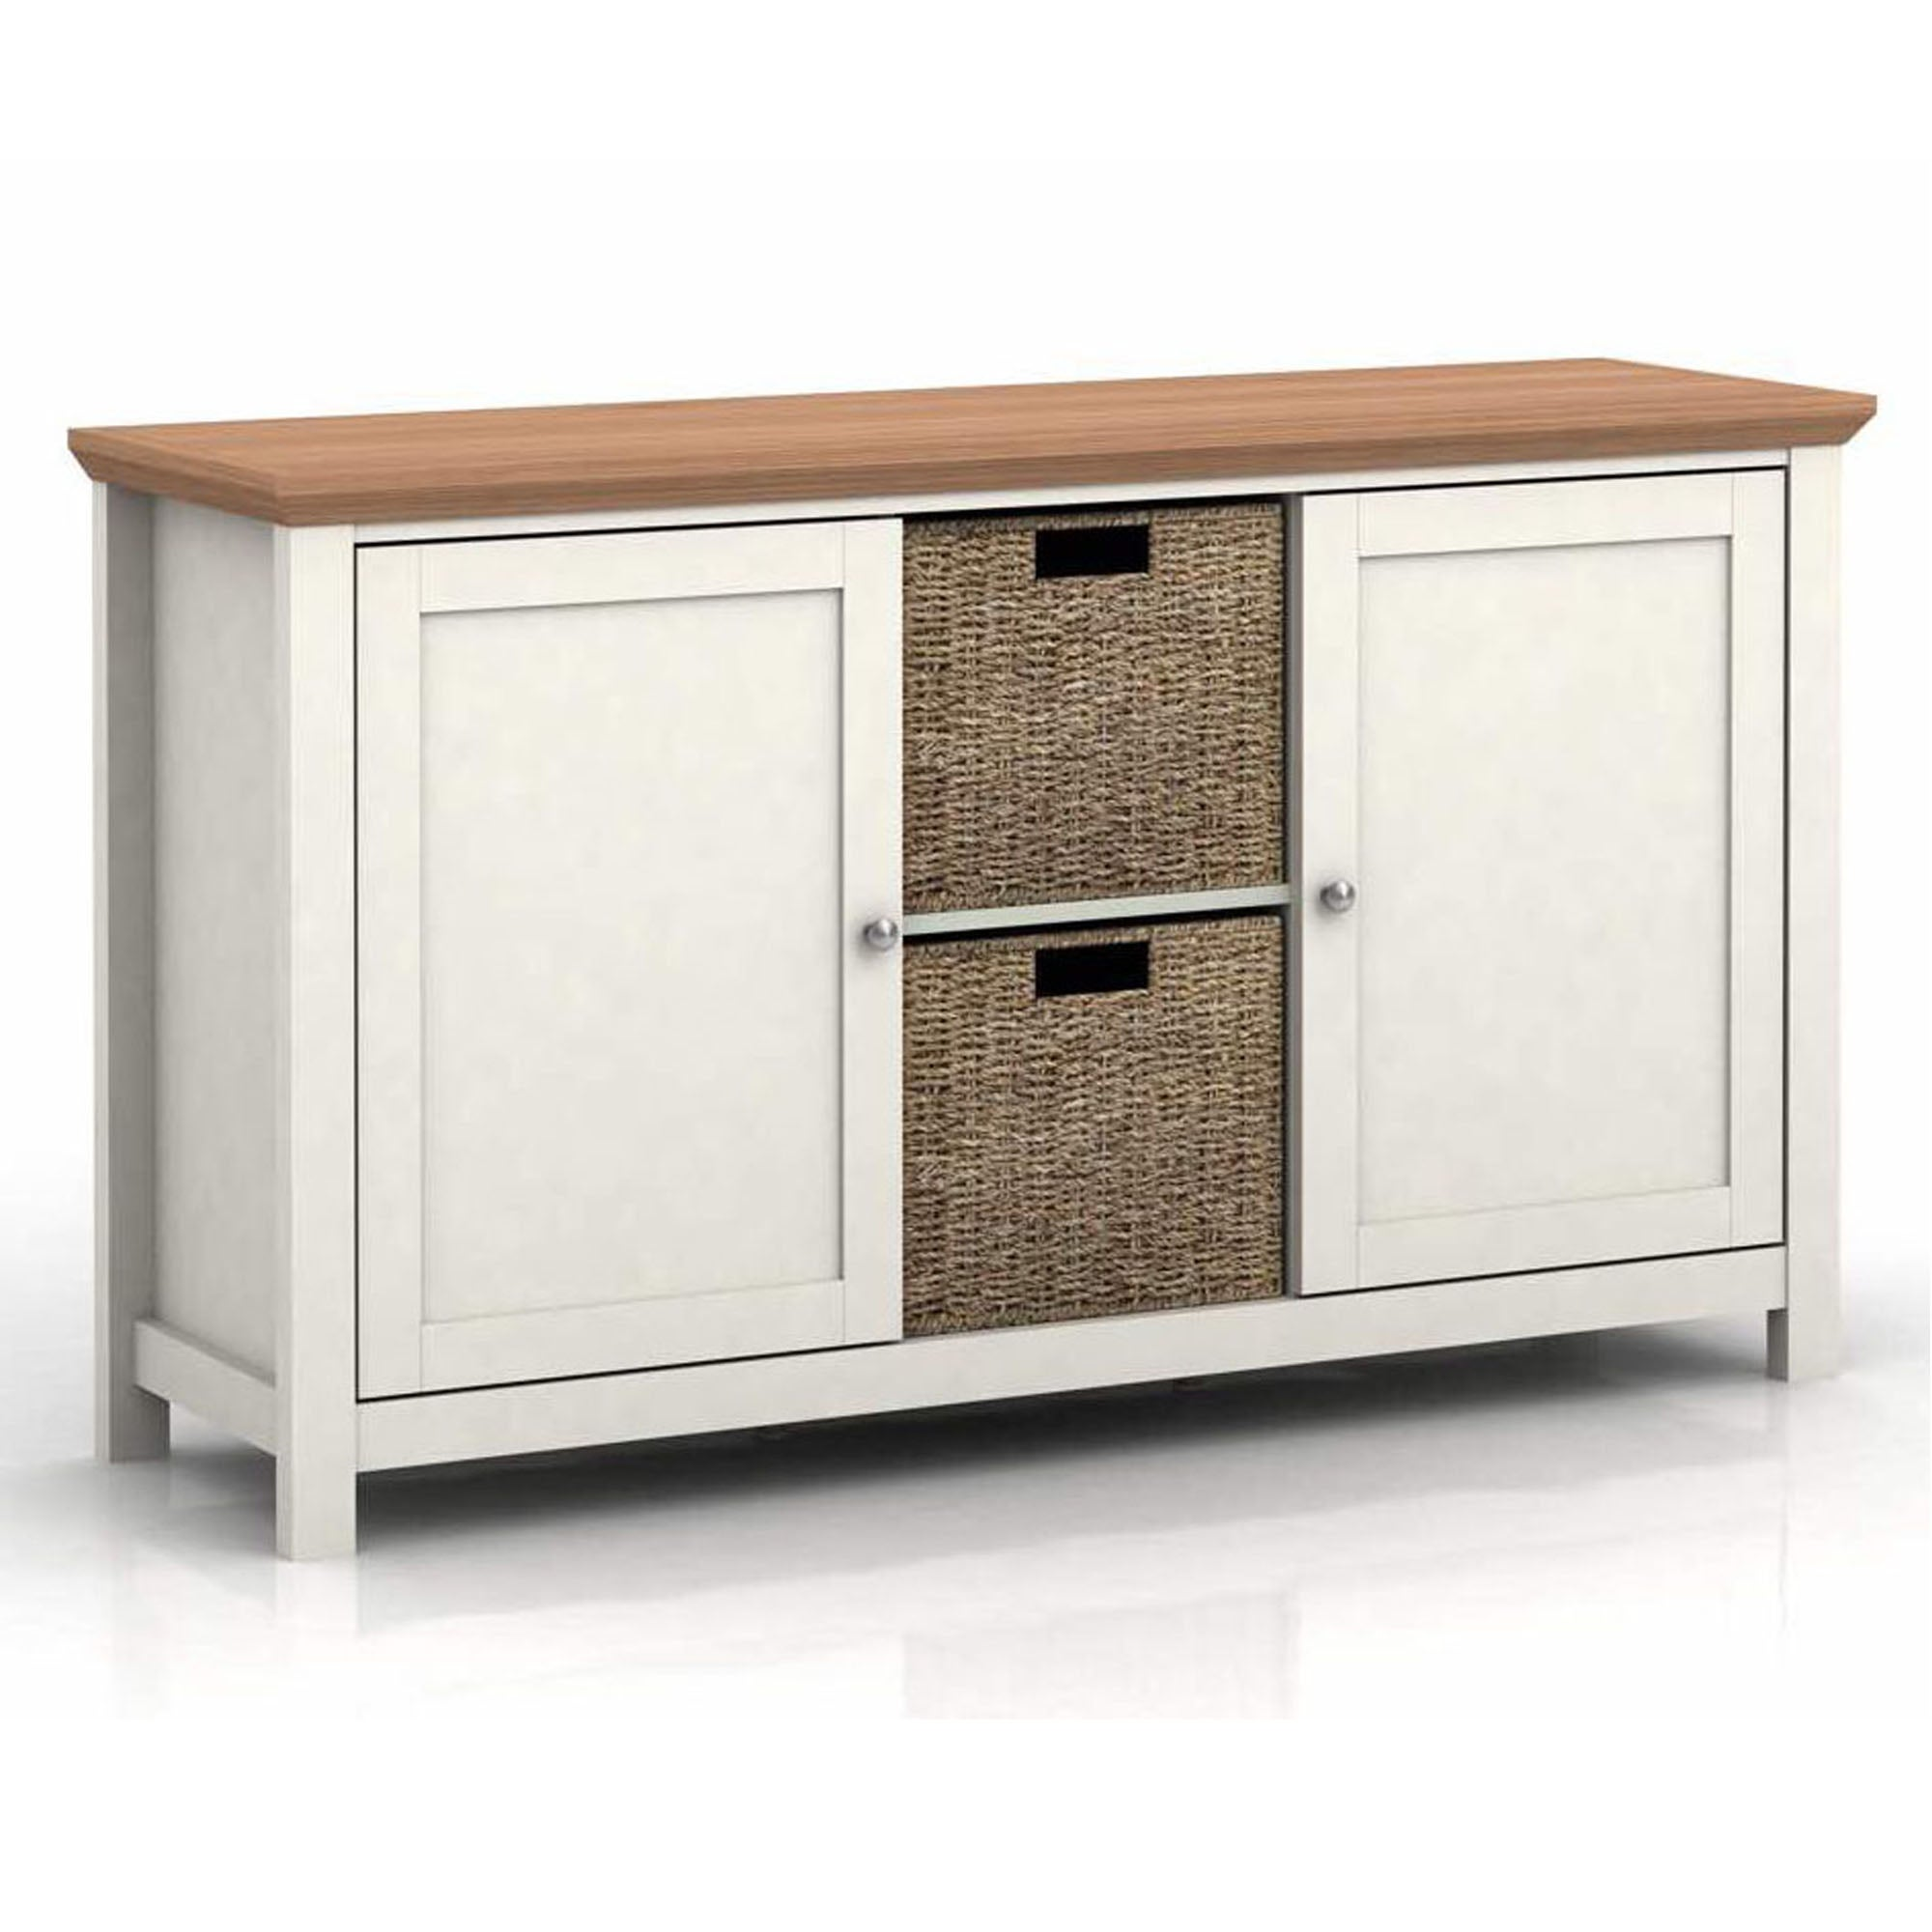 Cotswold Cream Sideboard Cream and Brown